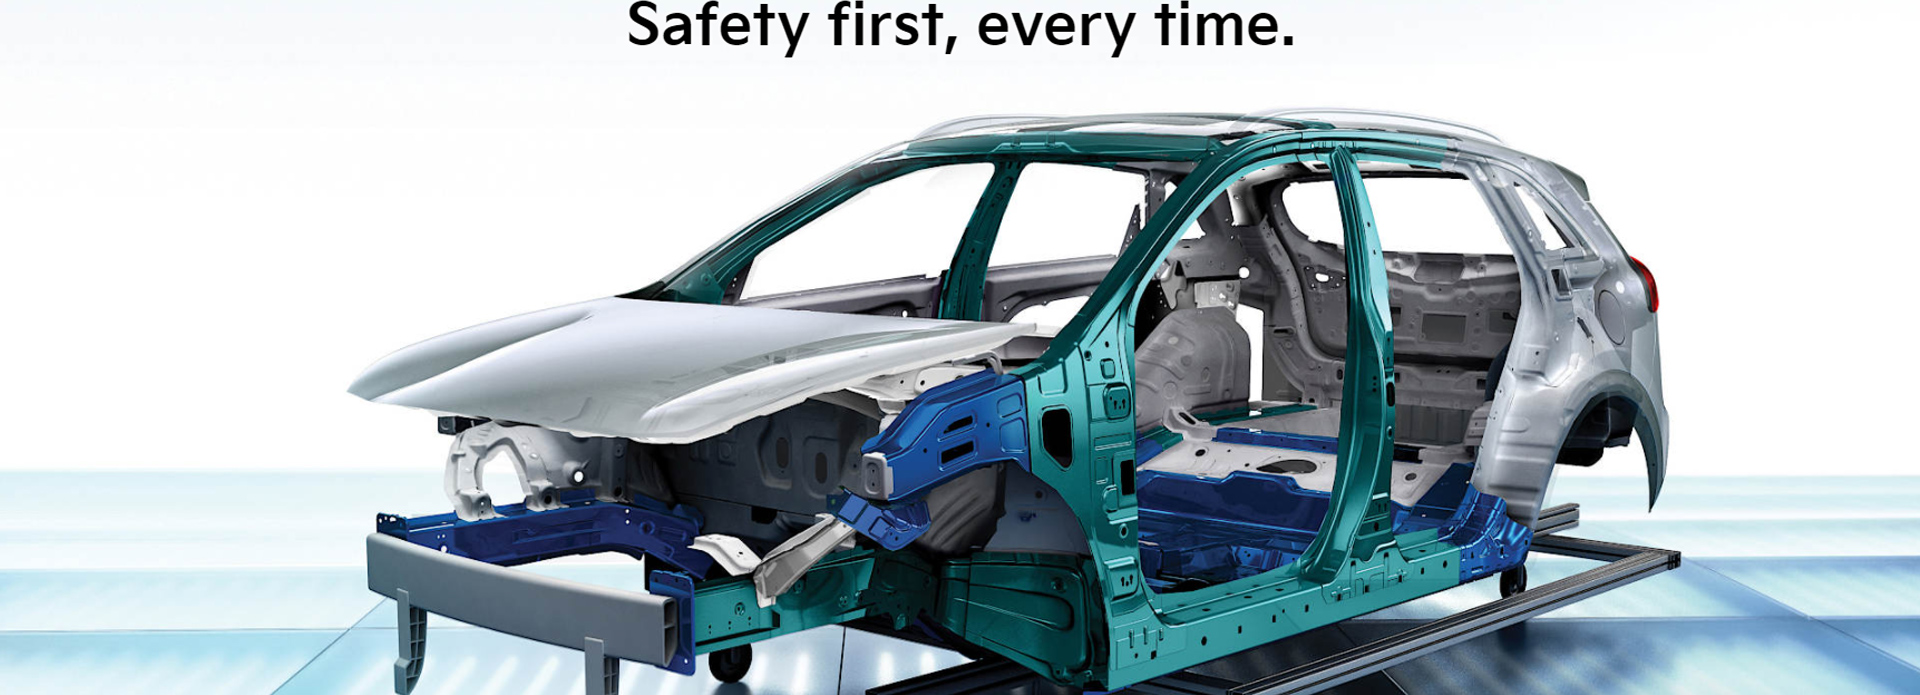 safety-spacer1